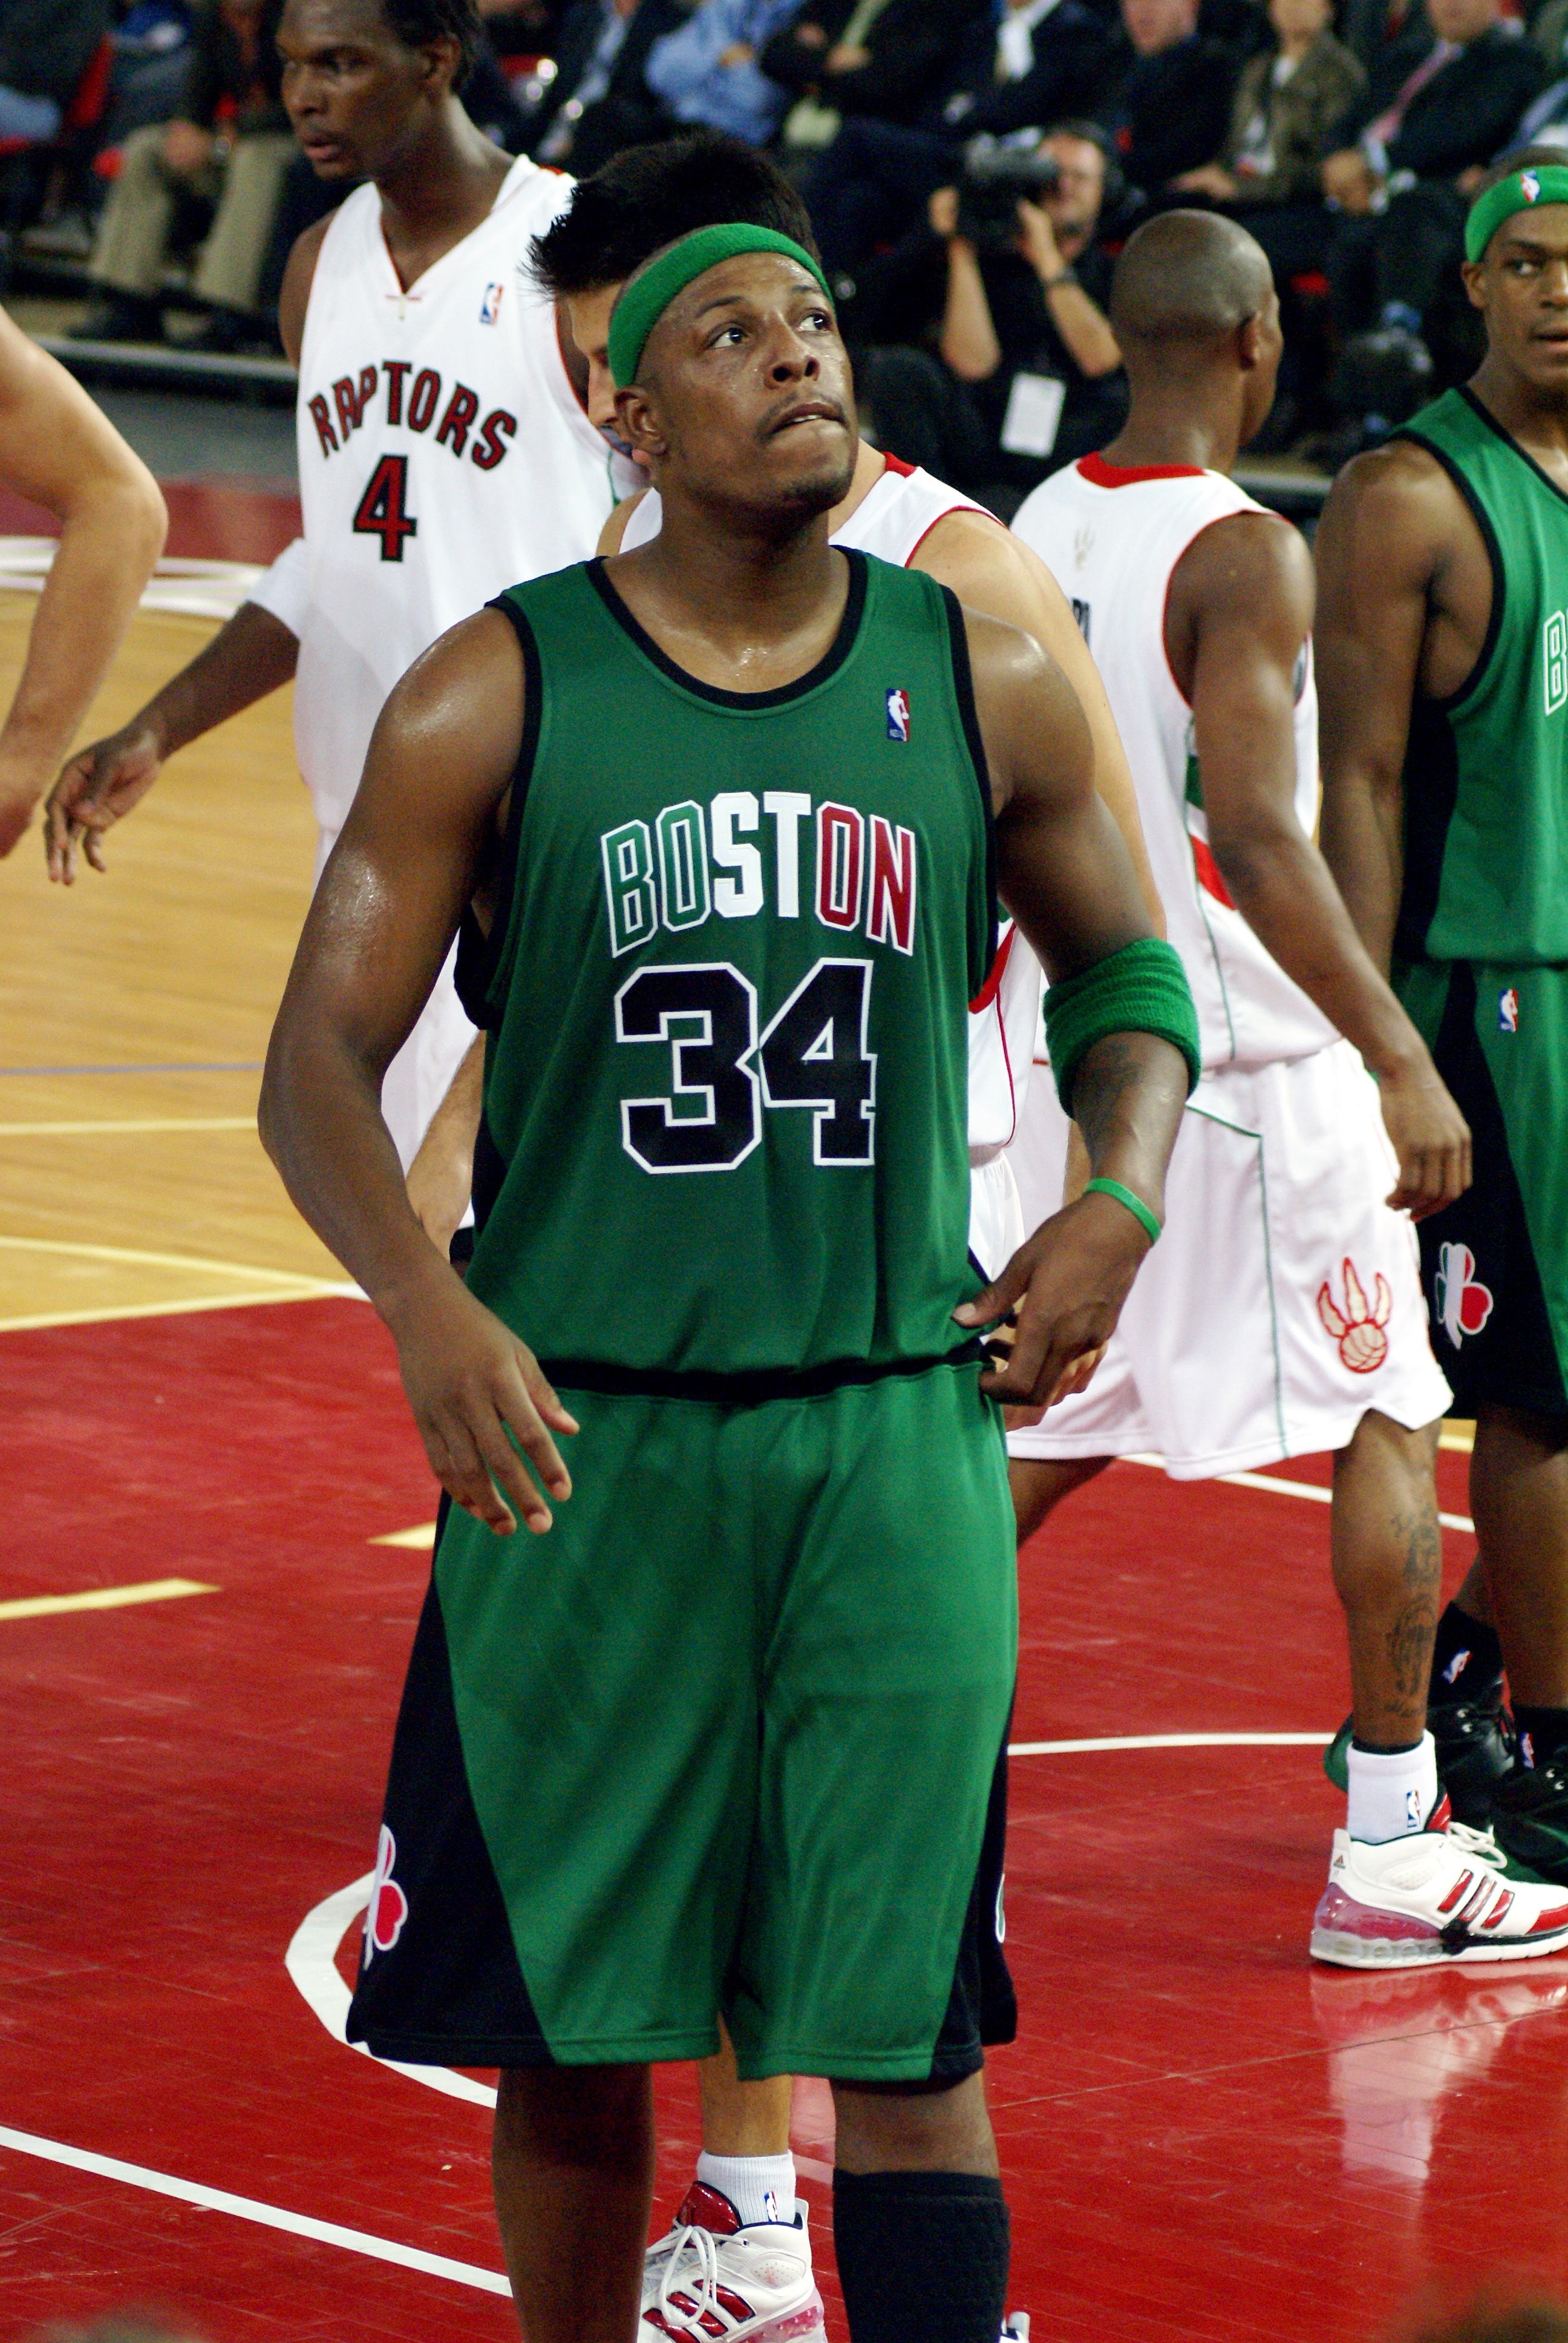 File:PAUL PIERCE.JPG - Wikipedia, the free encyclopedia